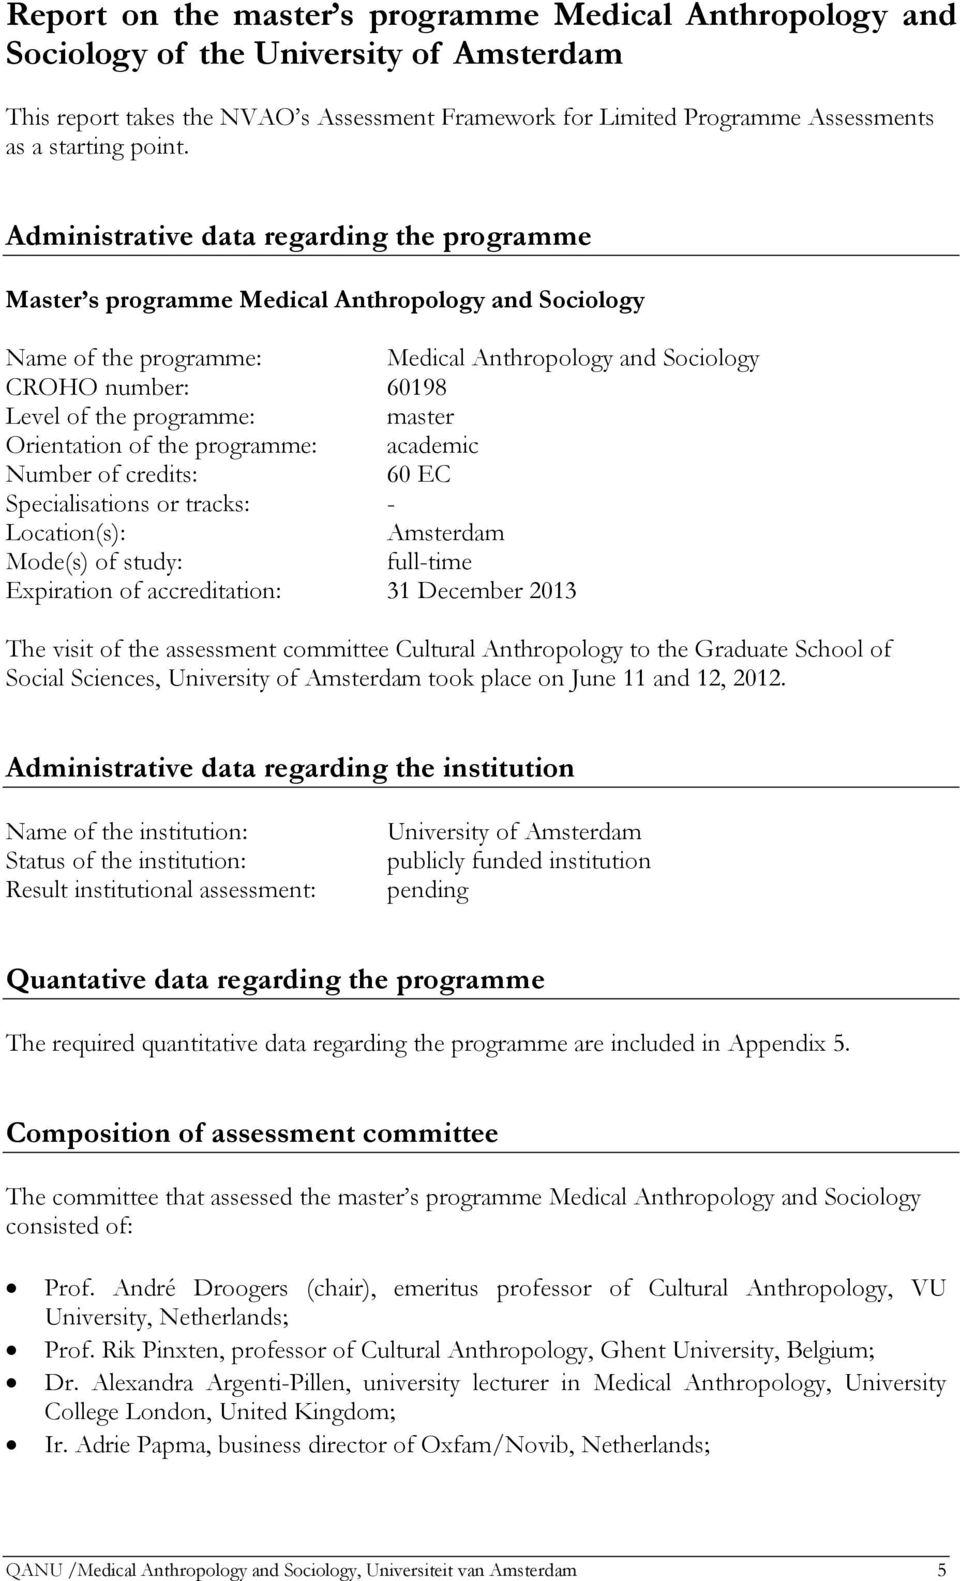 Administrative data regarding the programme Master s programme Medical Anthropology and Sociology Name of the programme: Medical Anthropology and Sociology CROHO number: 60198 Level of the programme: